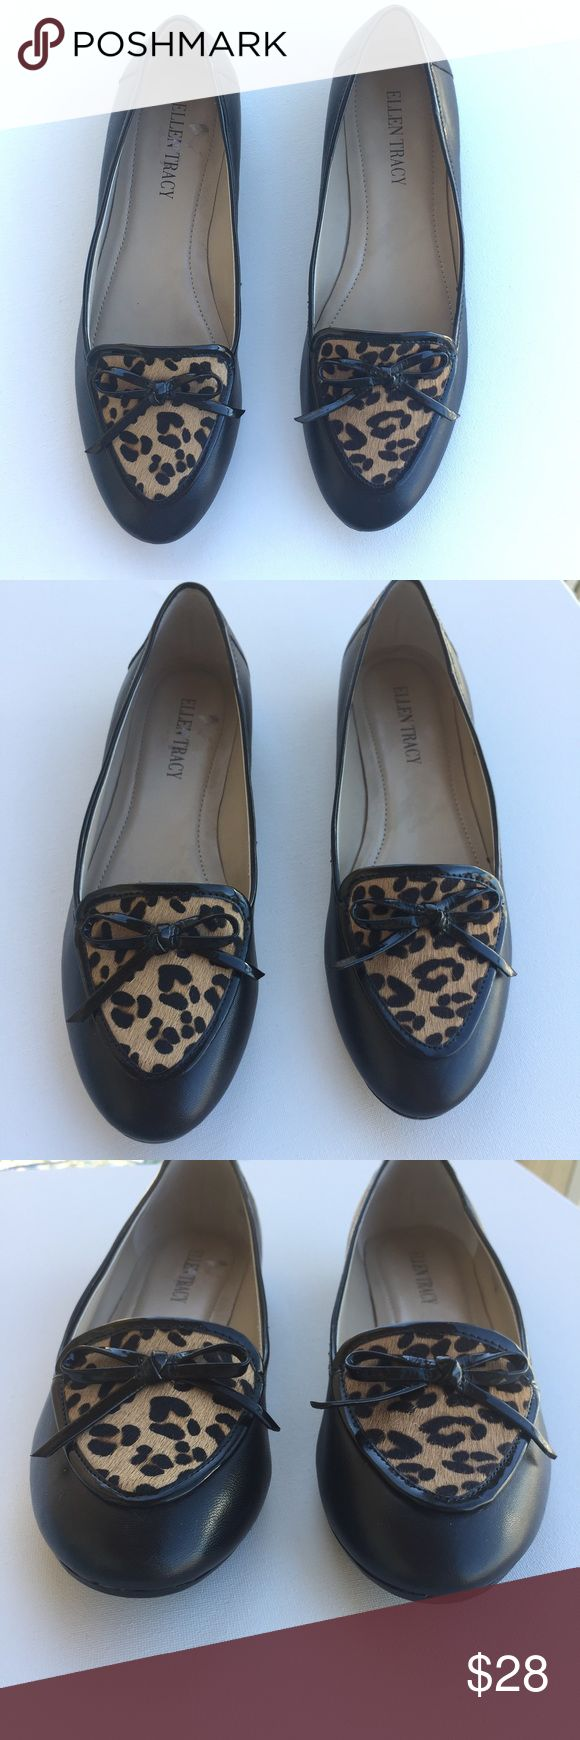 """💲⬇️Ellen Tracy Cheetah Print Flats Size 6.5M ✨1/4"""" Heel ✨Rubber Soles ✨Leather Upper ✨""""Alpine""""  ✨Size 6.5 M ✨Cheetah Hair  ✨In Perfect Condition **I just need to wipe the bottoms clean since I noticed they got a little dusty as you can see in final photo. Ellen Tracy Shoes"""